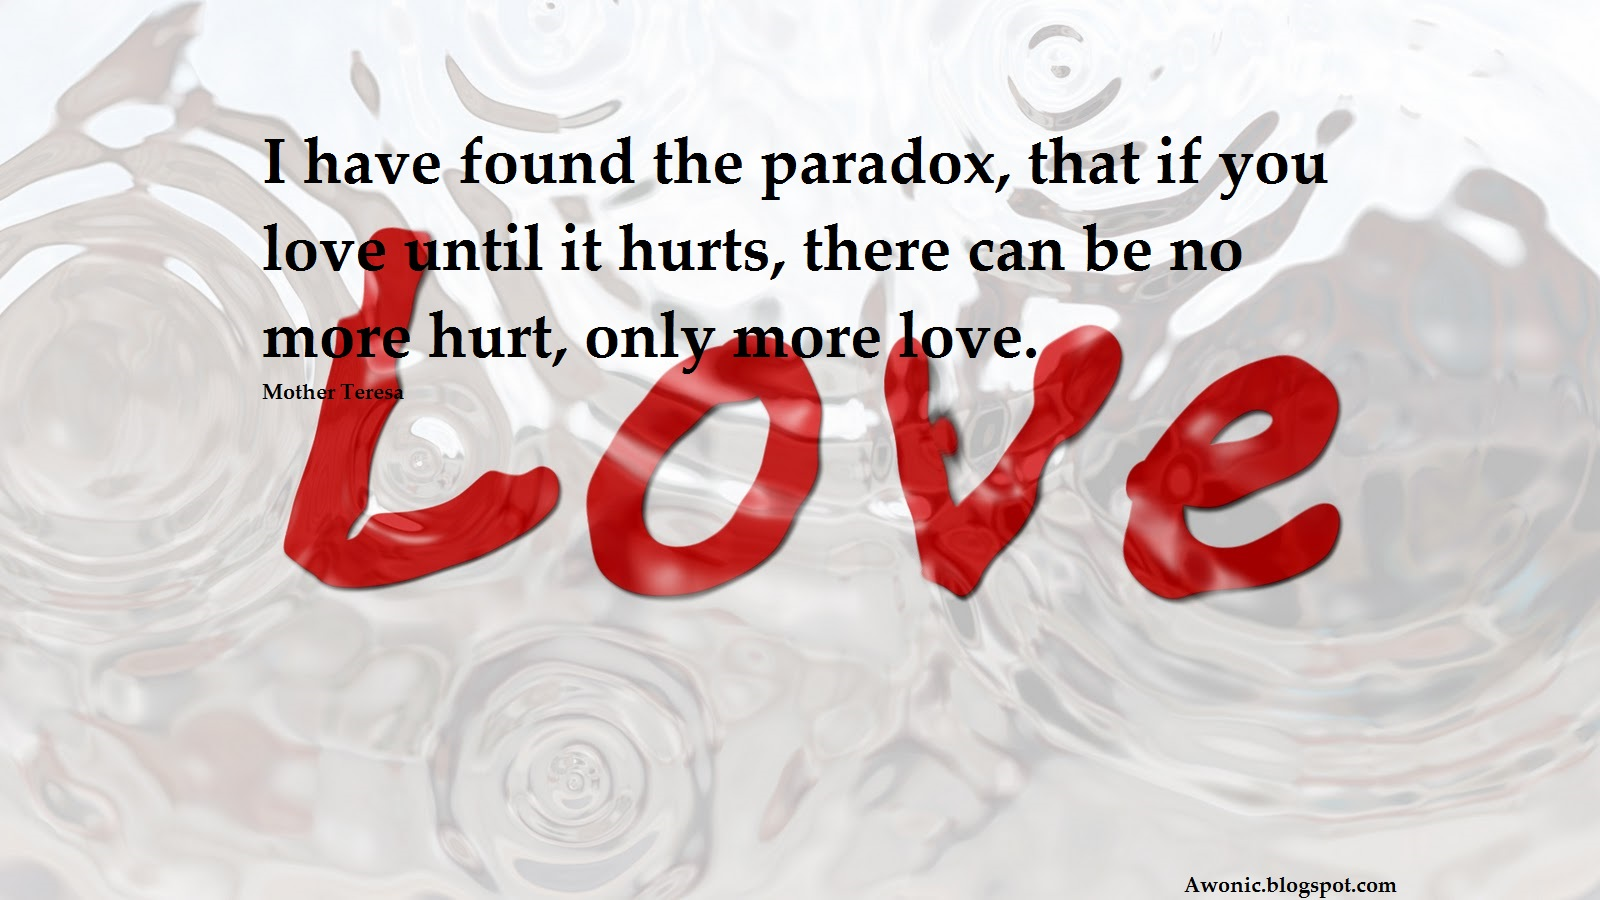 Mother Teresa Iconic Quotes About The Relation Between Love And Hurt